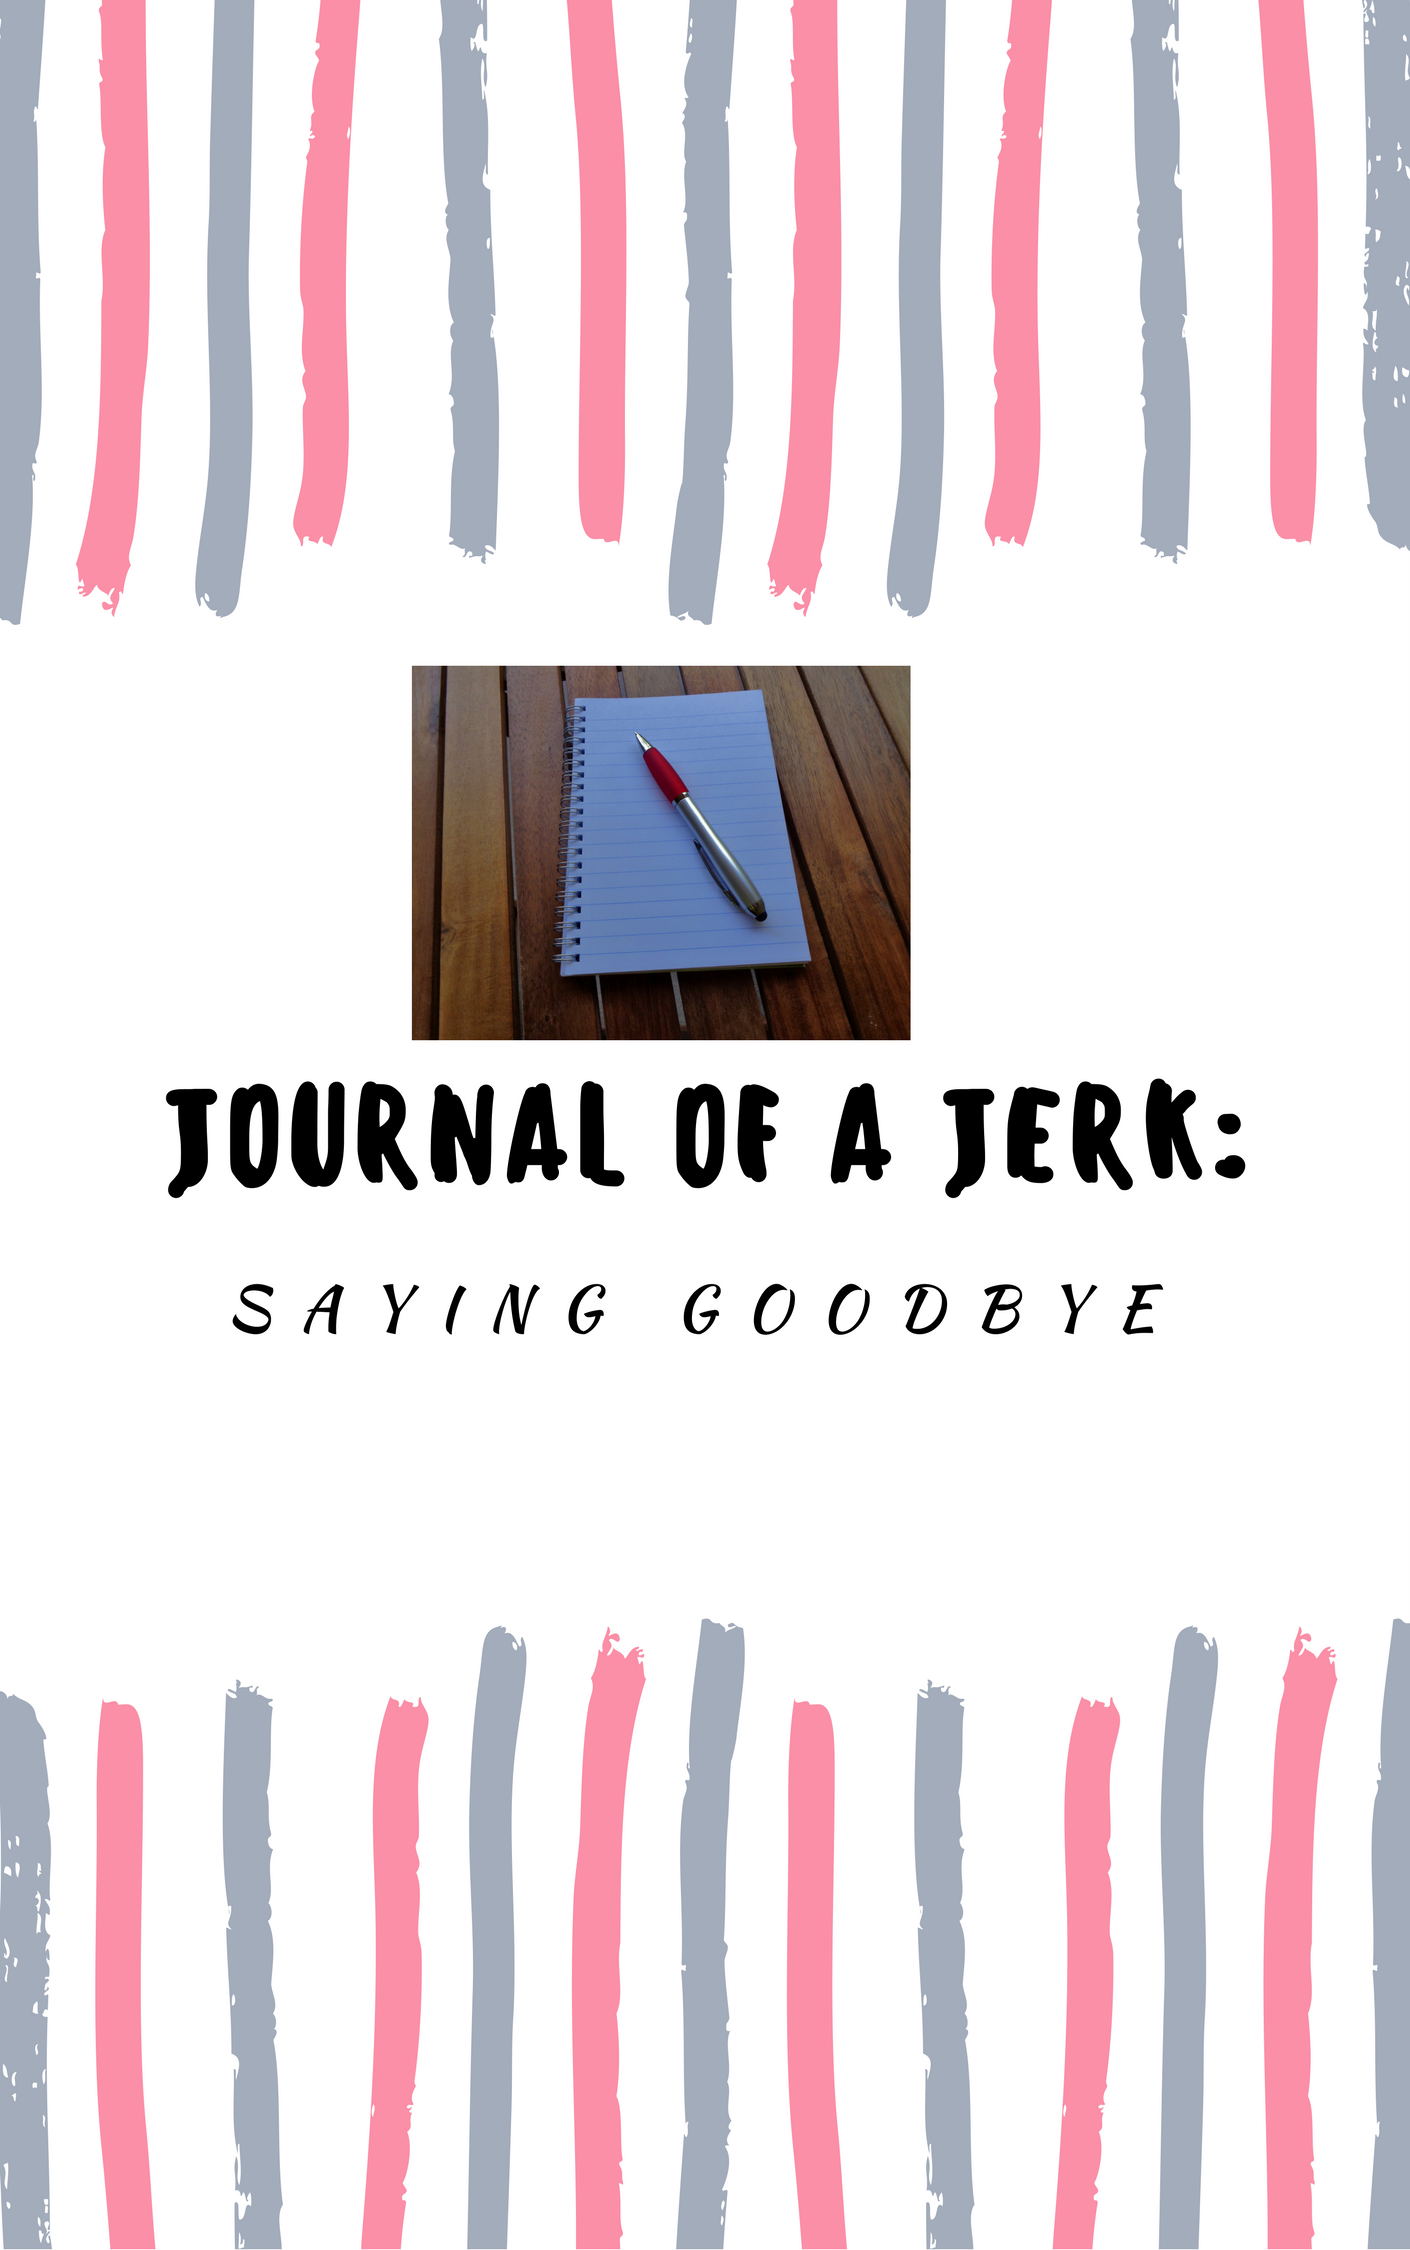 Journal of a Jerk: Saying Goodbye